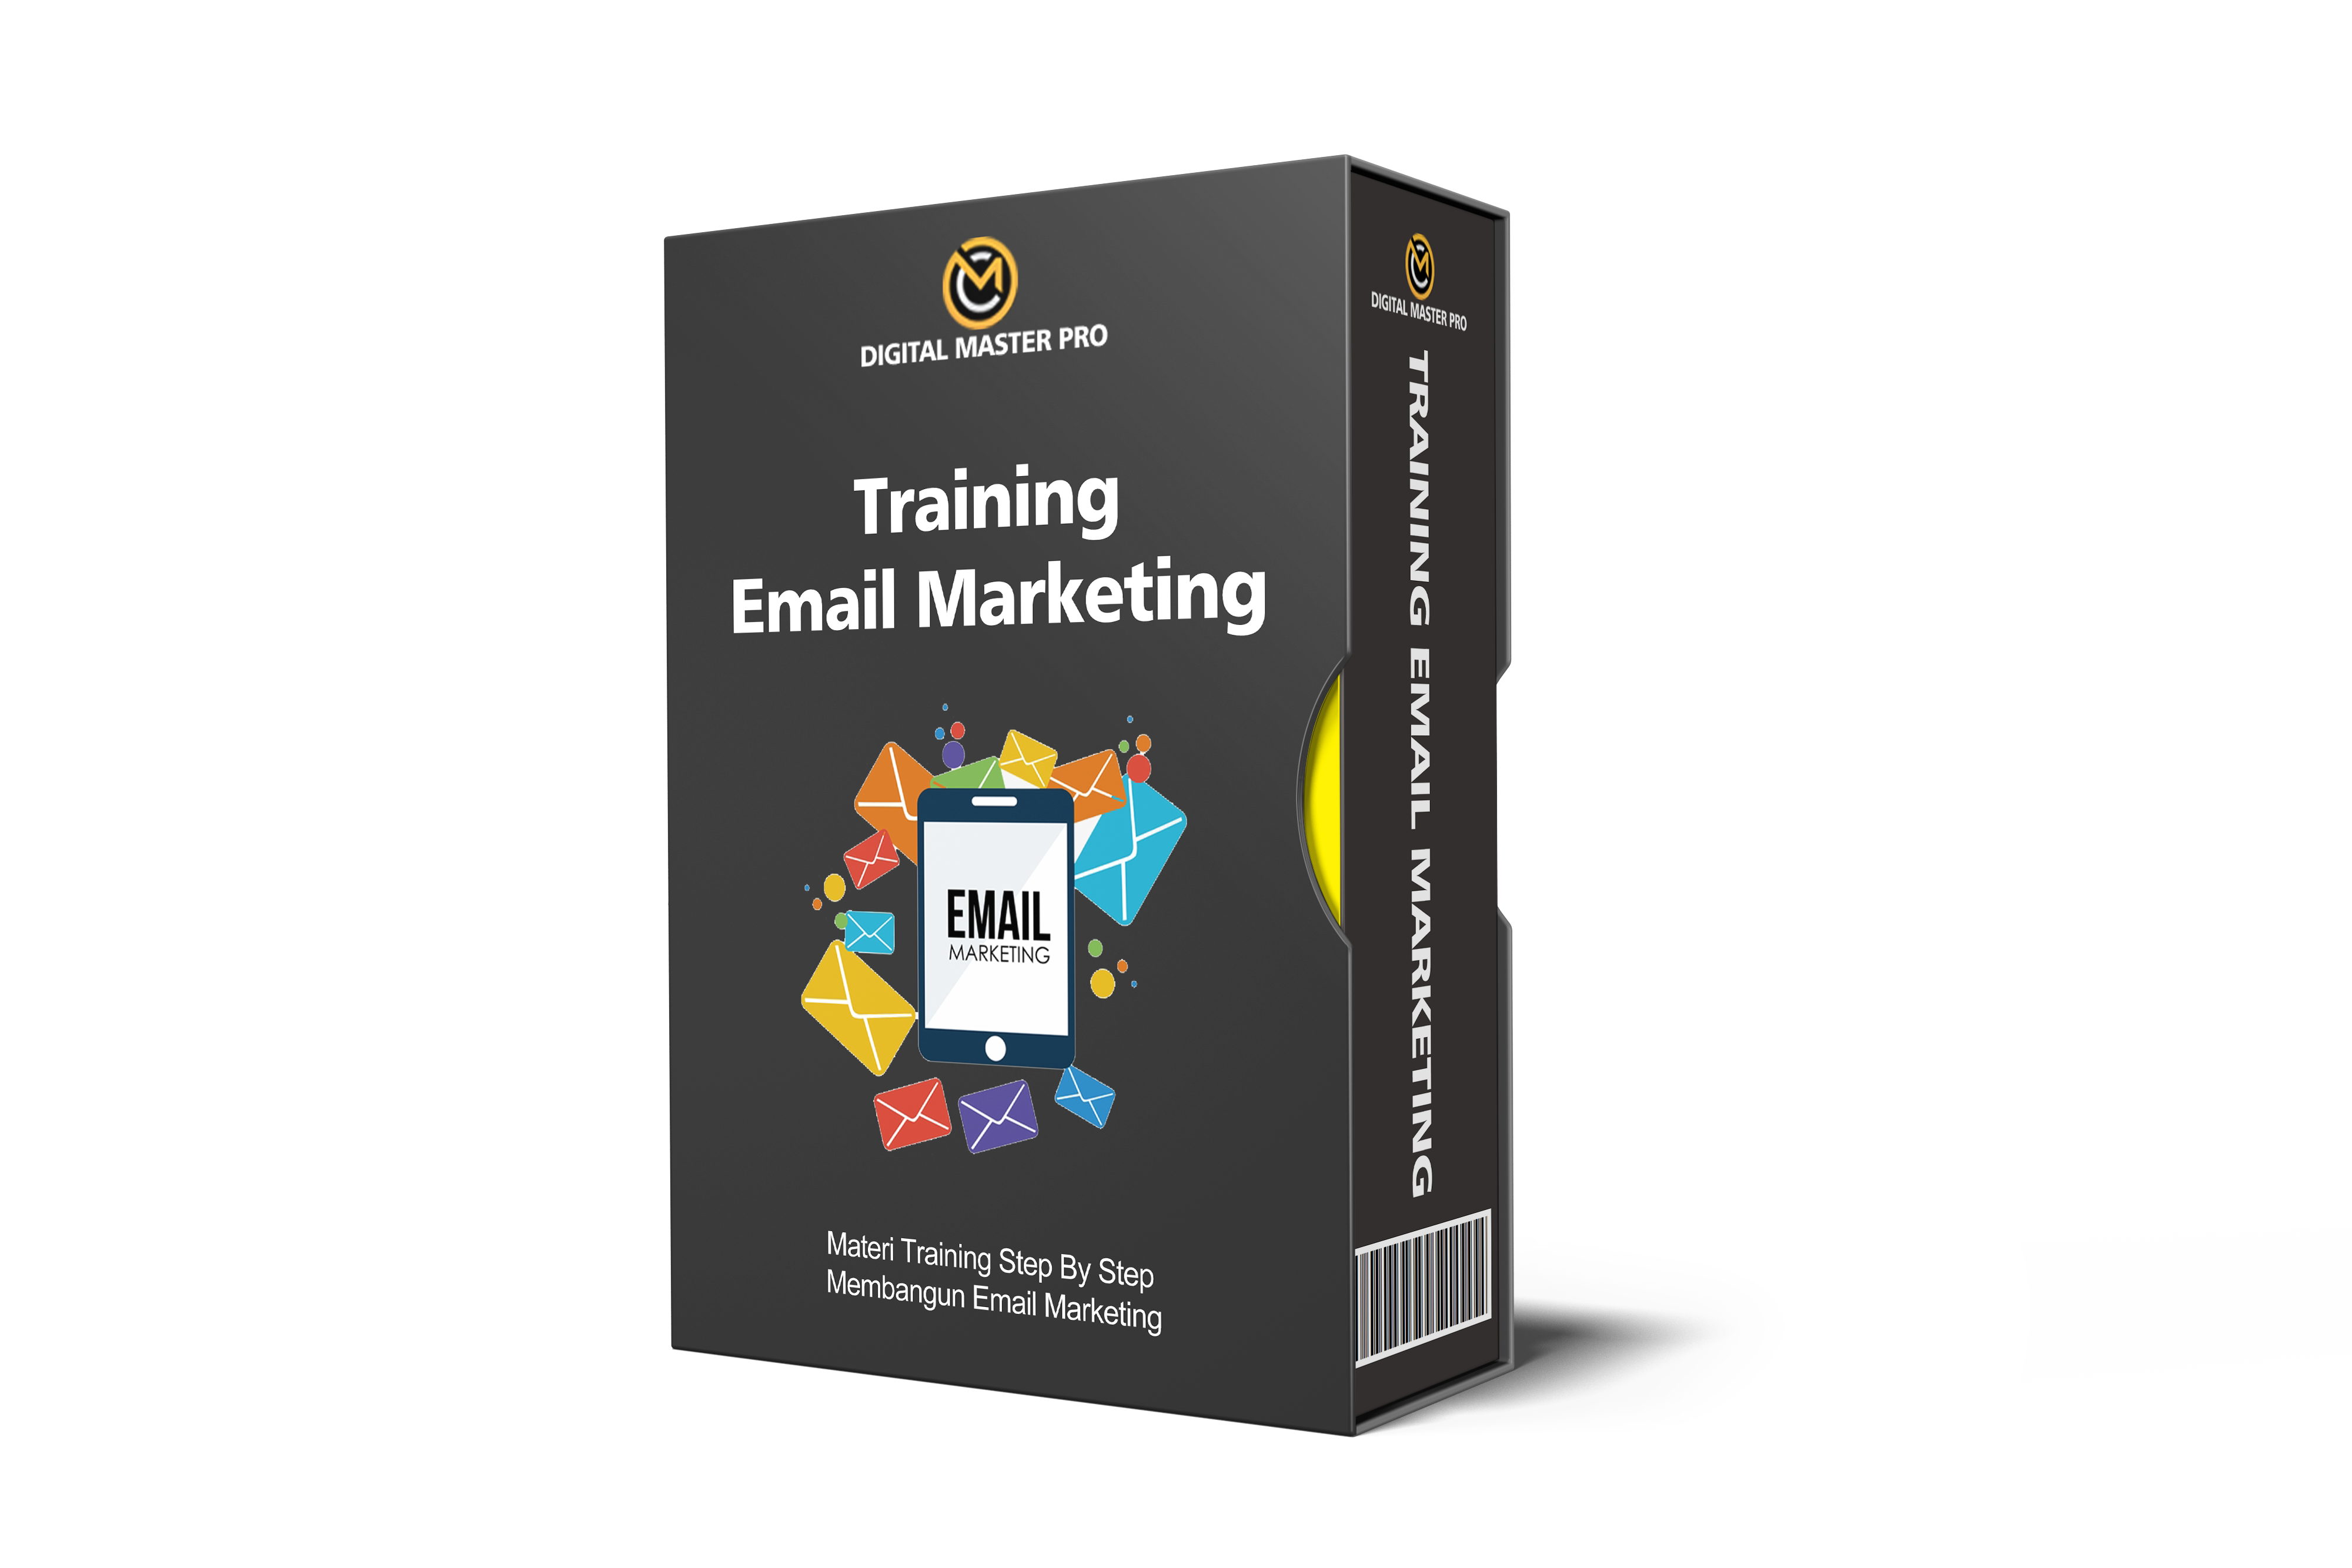 NEW BOX - TRAINING EMAIL MARKETING